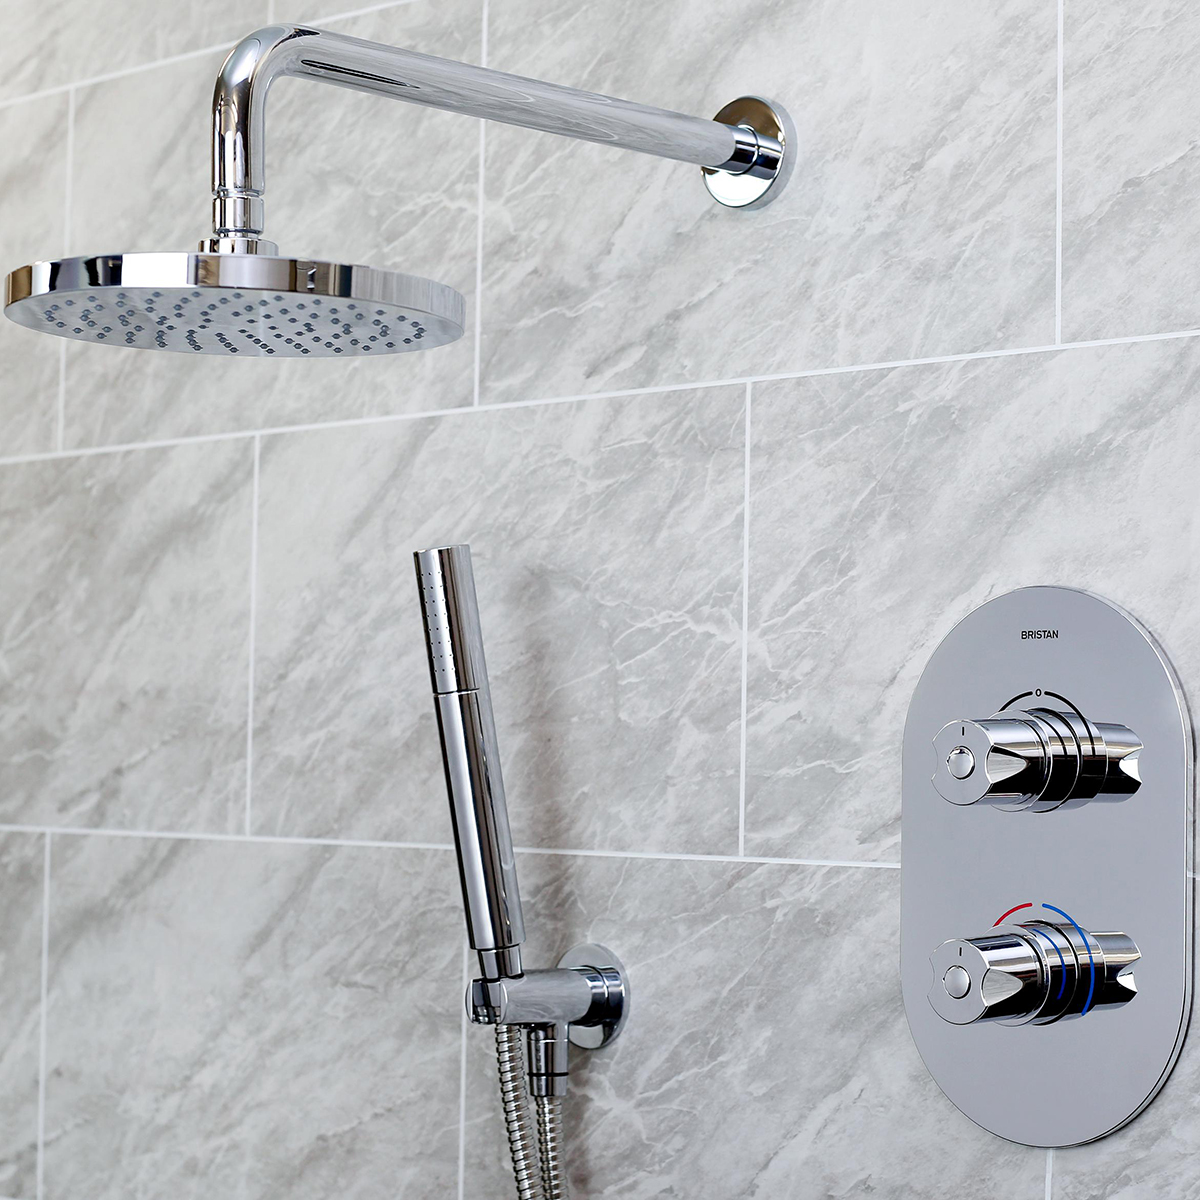 Shower Pack with Fixed Head and Fixed Handset Holder